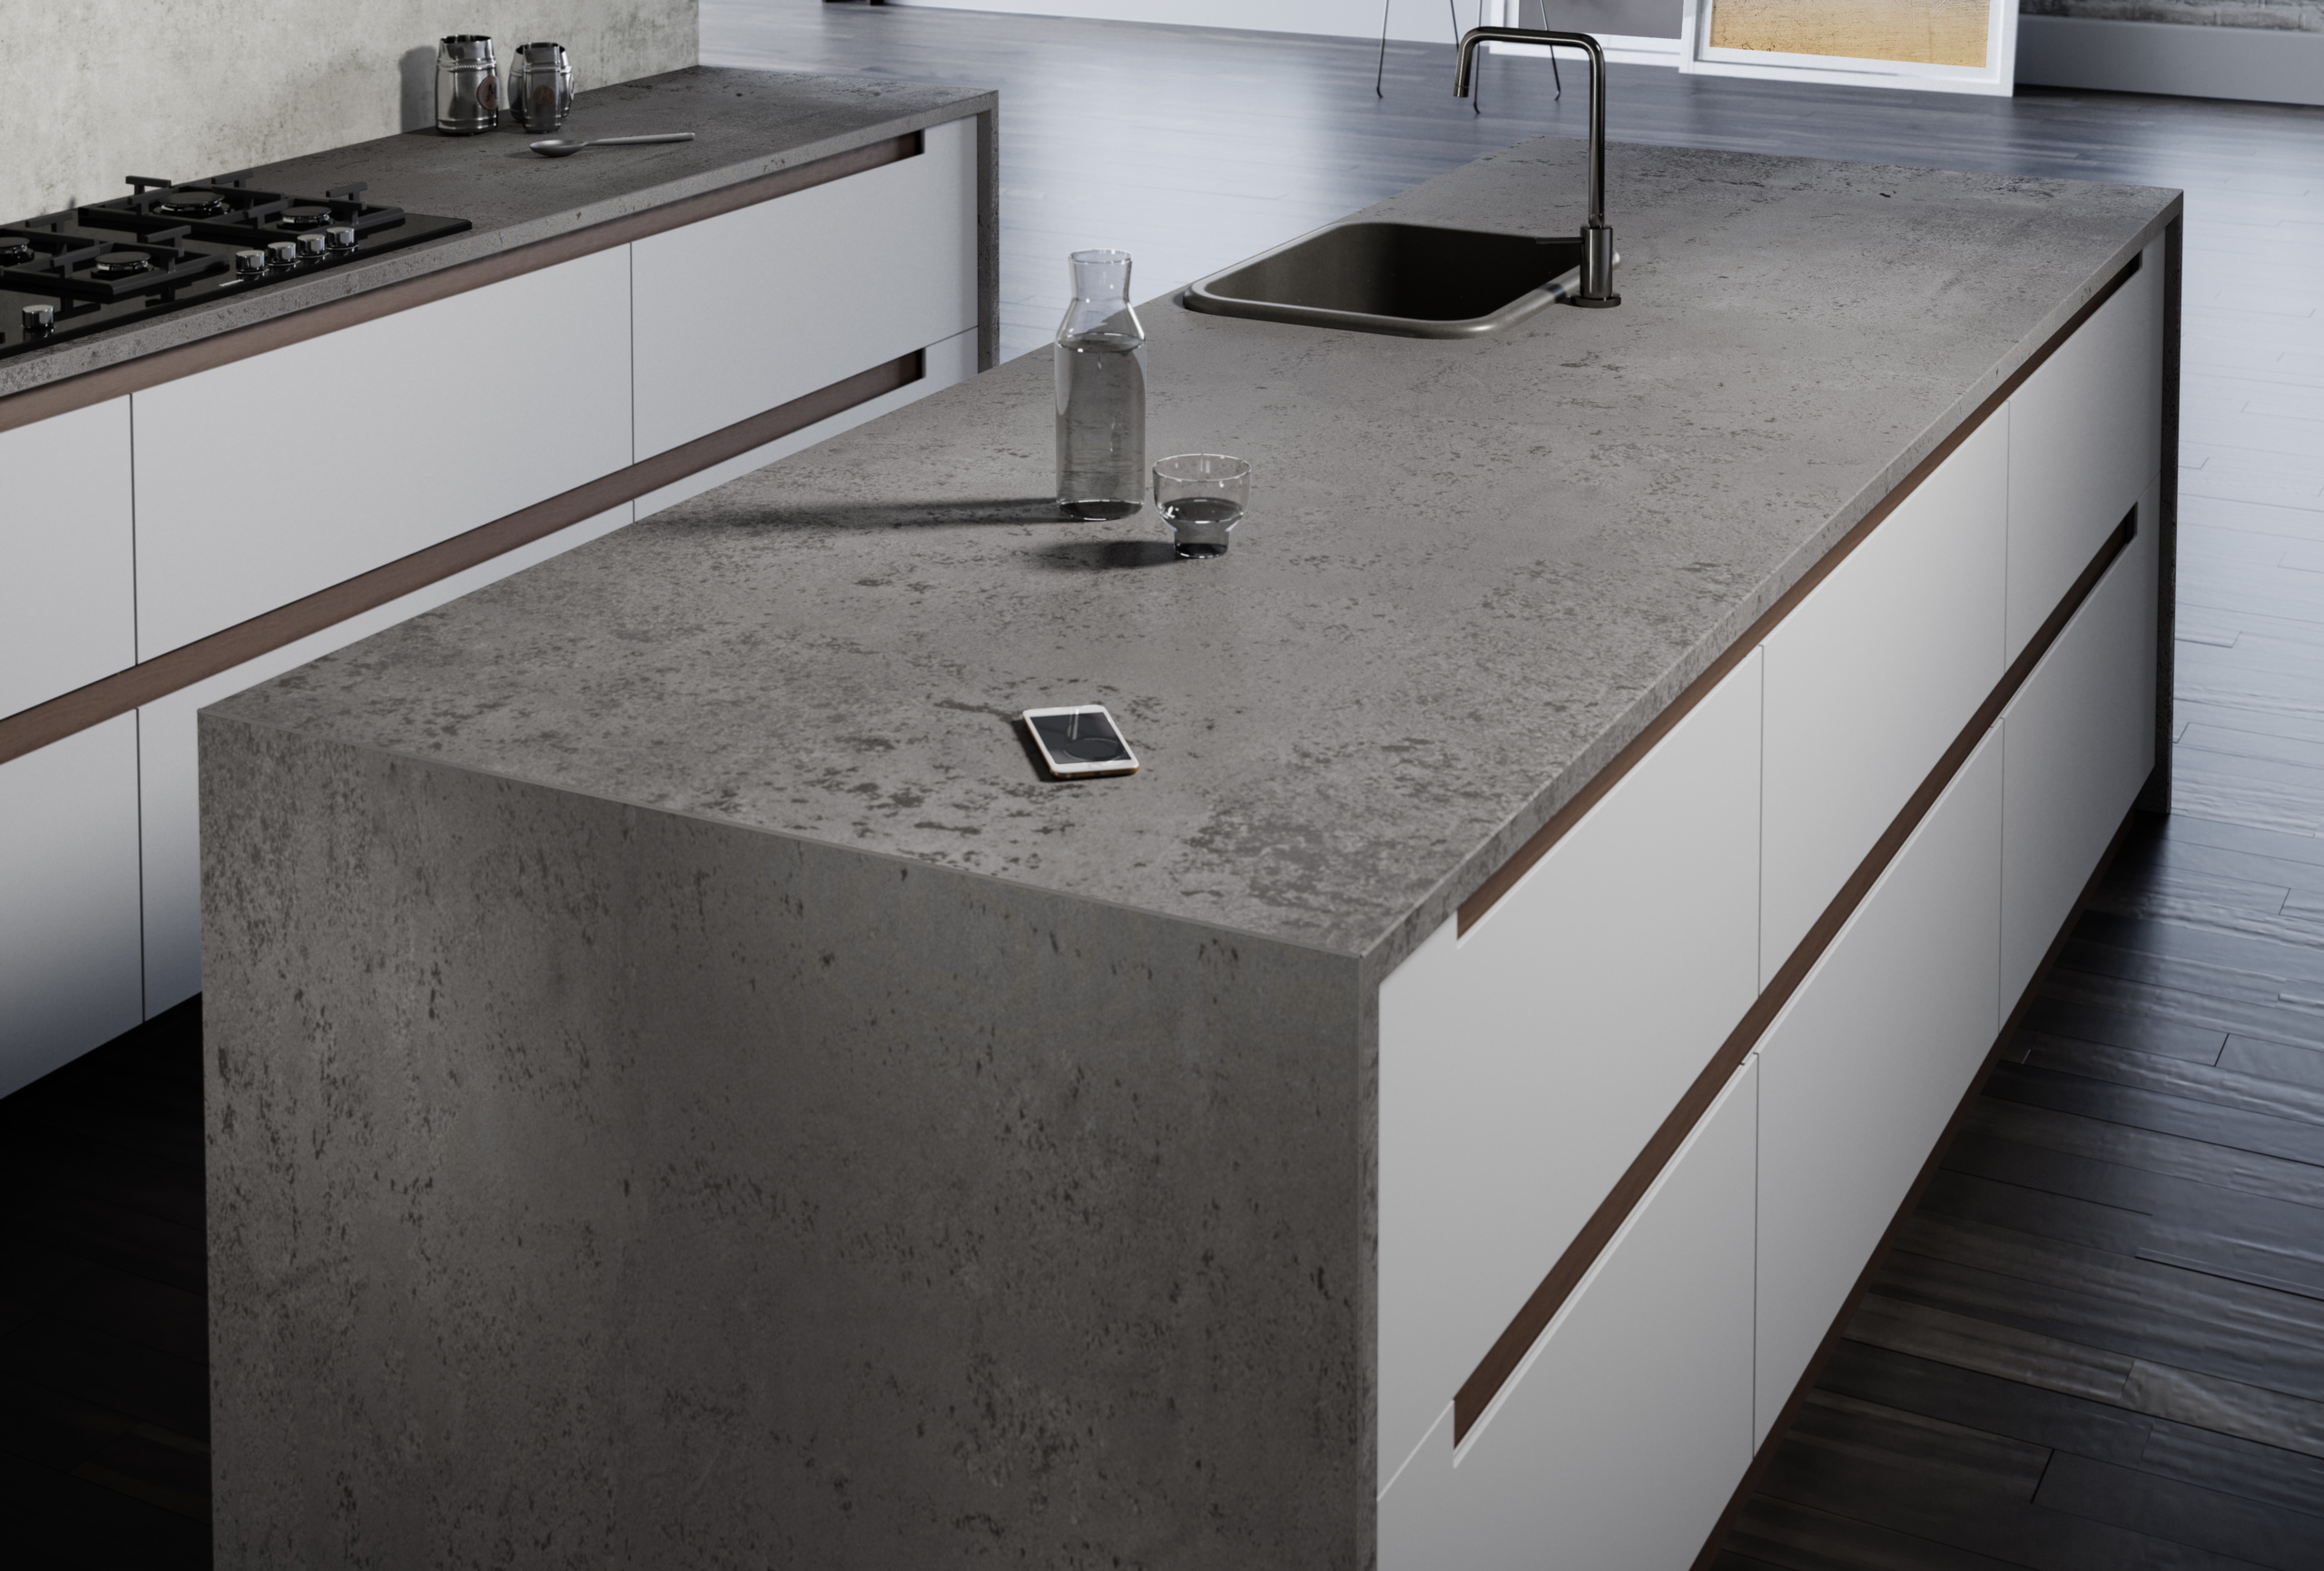 Rendering of a kitchen with Silestone Loft Cosentino